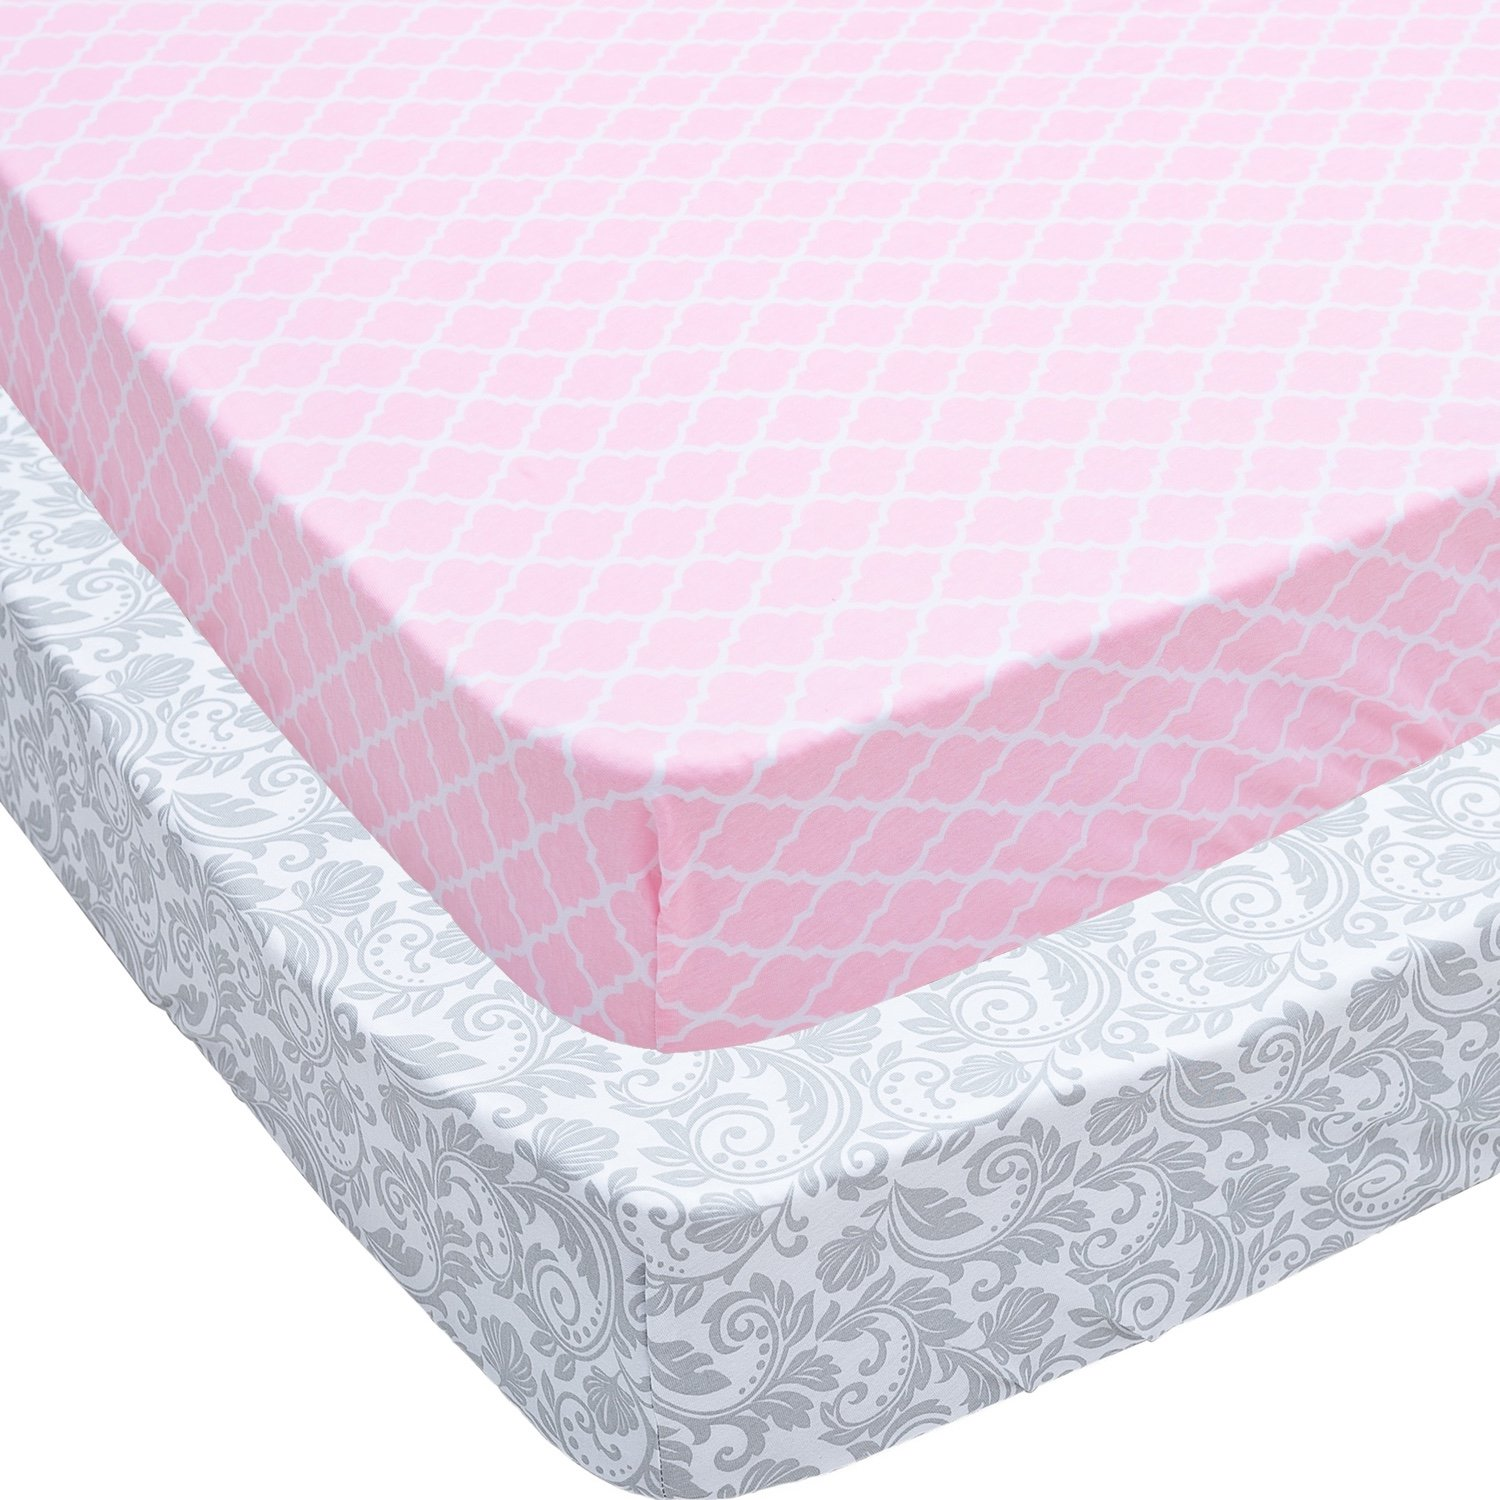 Crib Sheets, 2 Pack Pink Quatrefoil & Floral Fitted Soft Jersey Cotton Cover by Jomolly